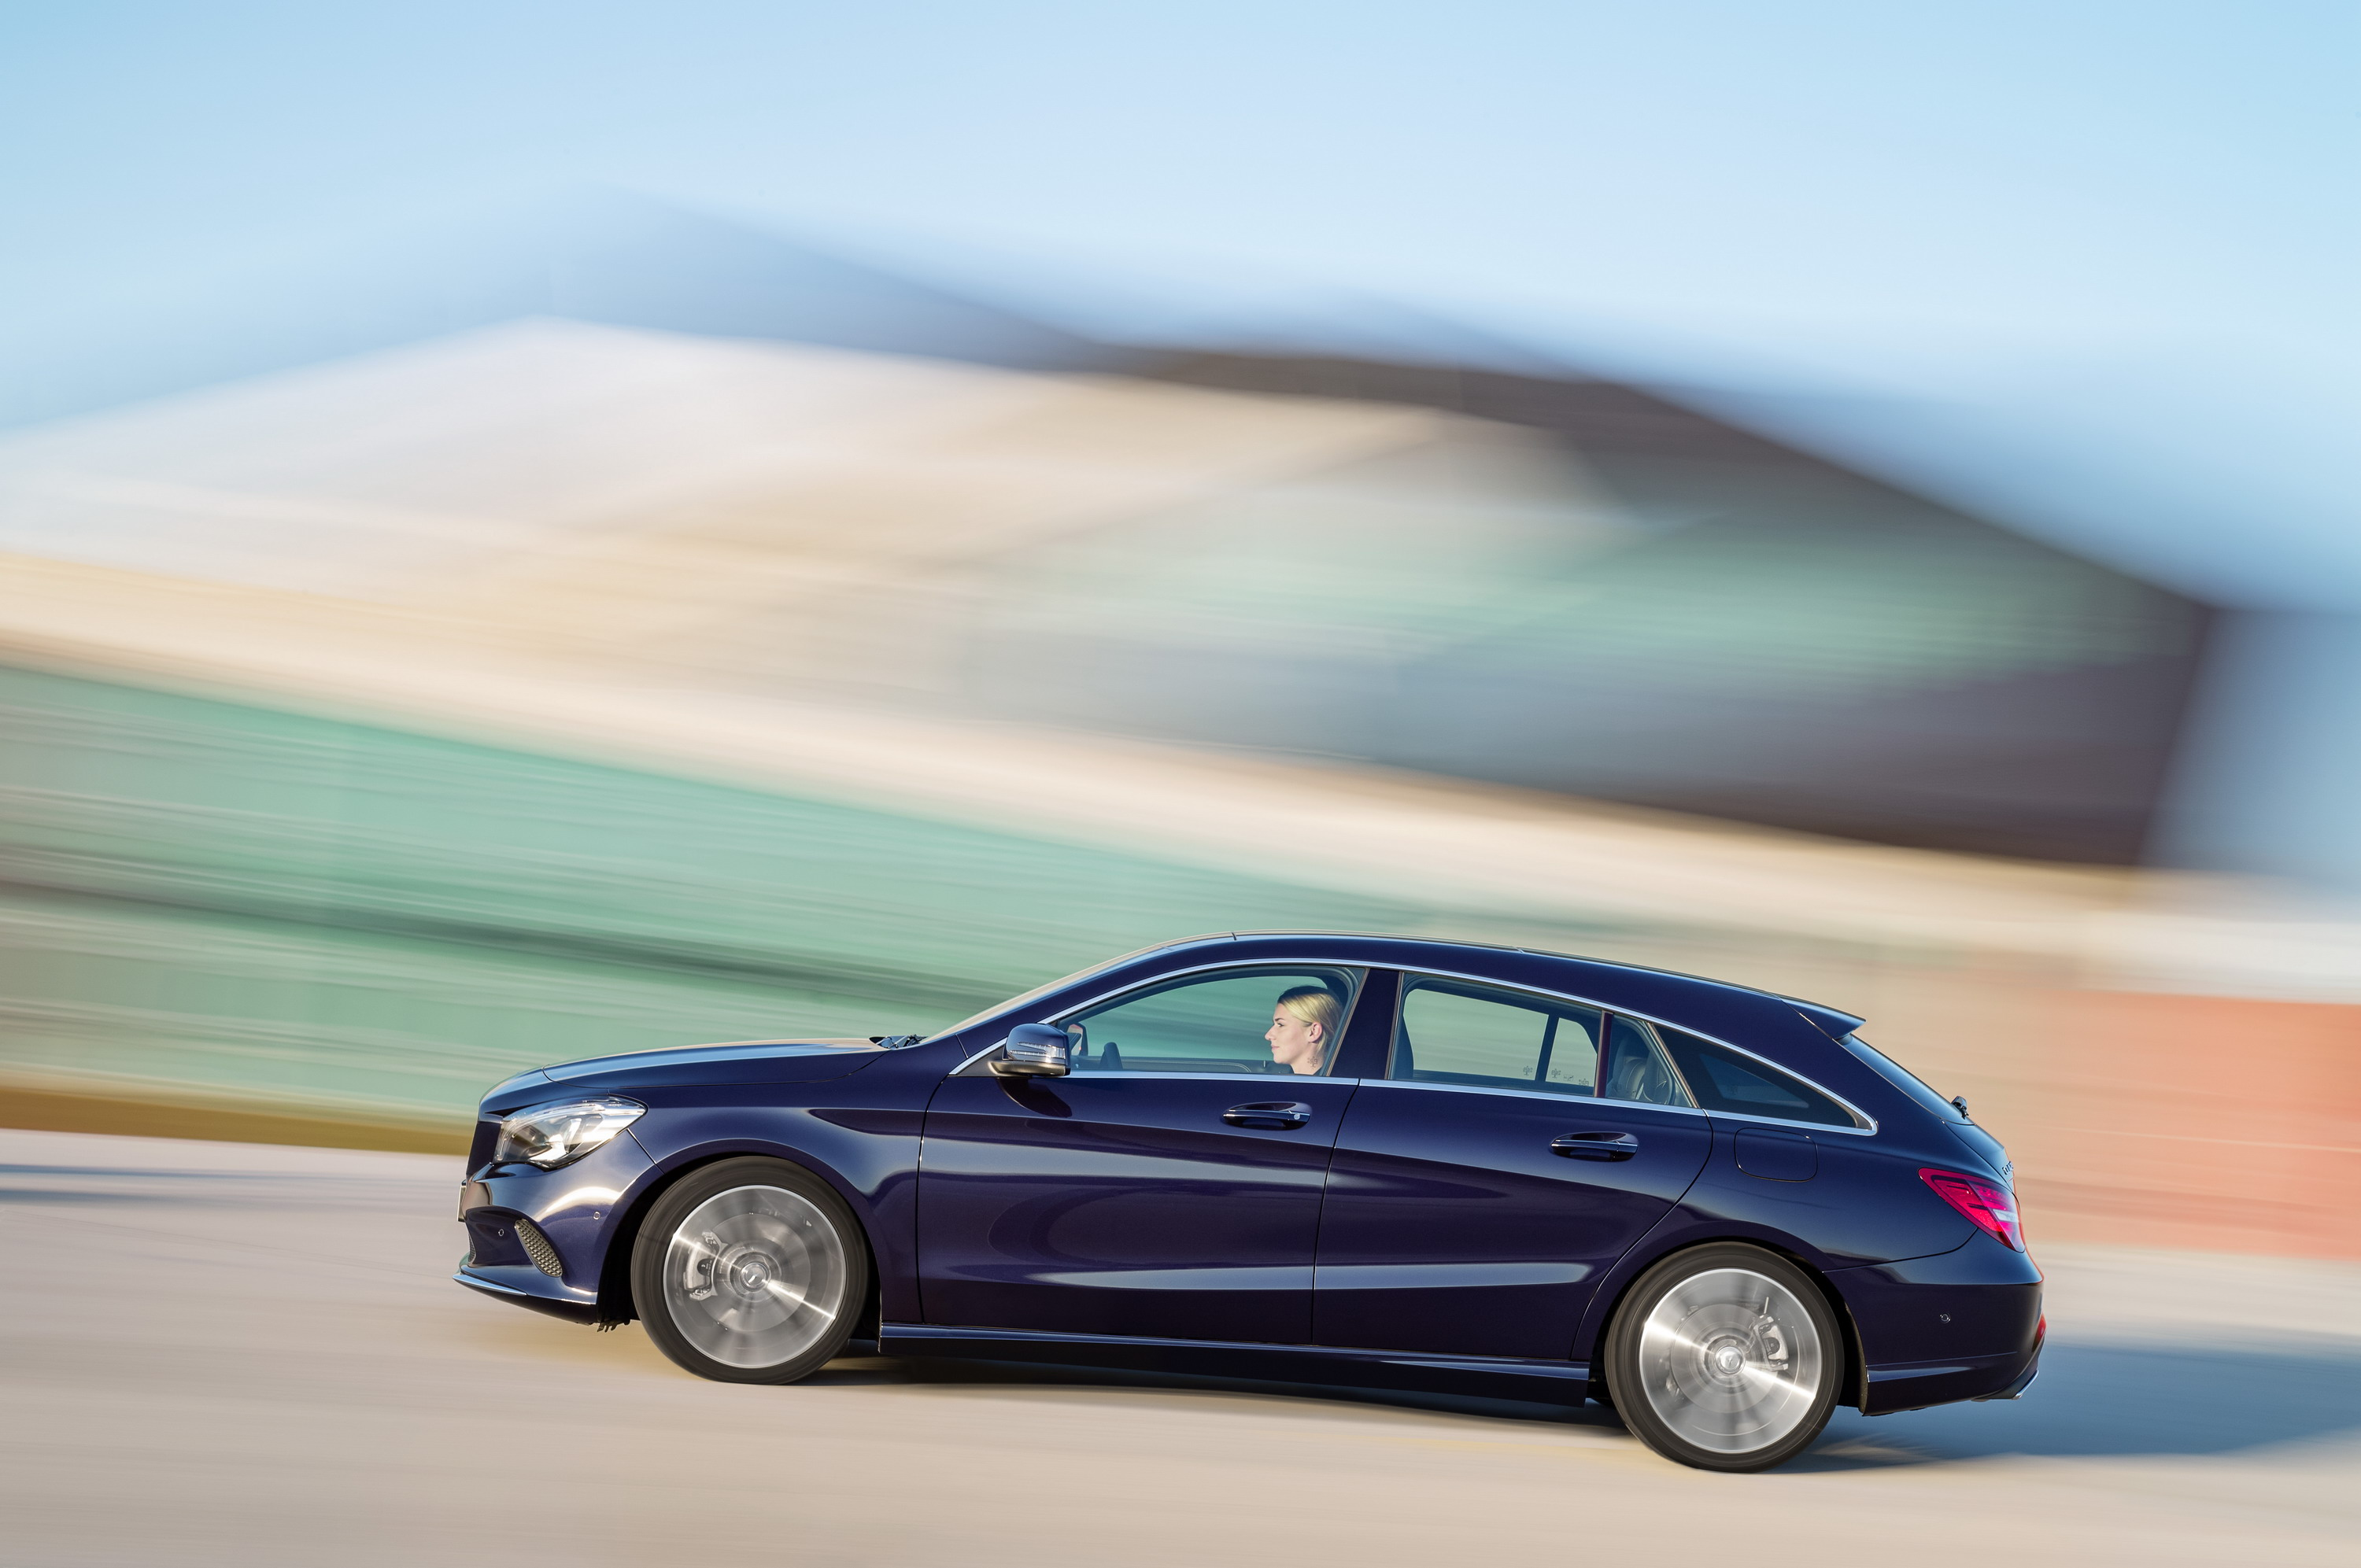 2017 Mercedes-Benz CLA Shooting Brake Review - Top Speed